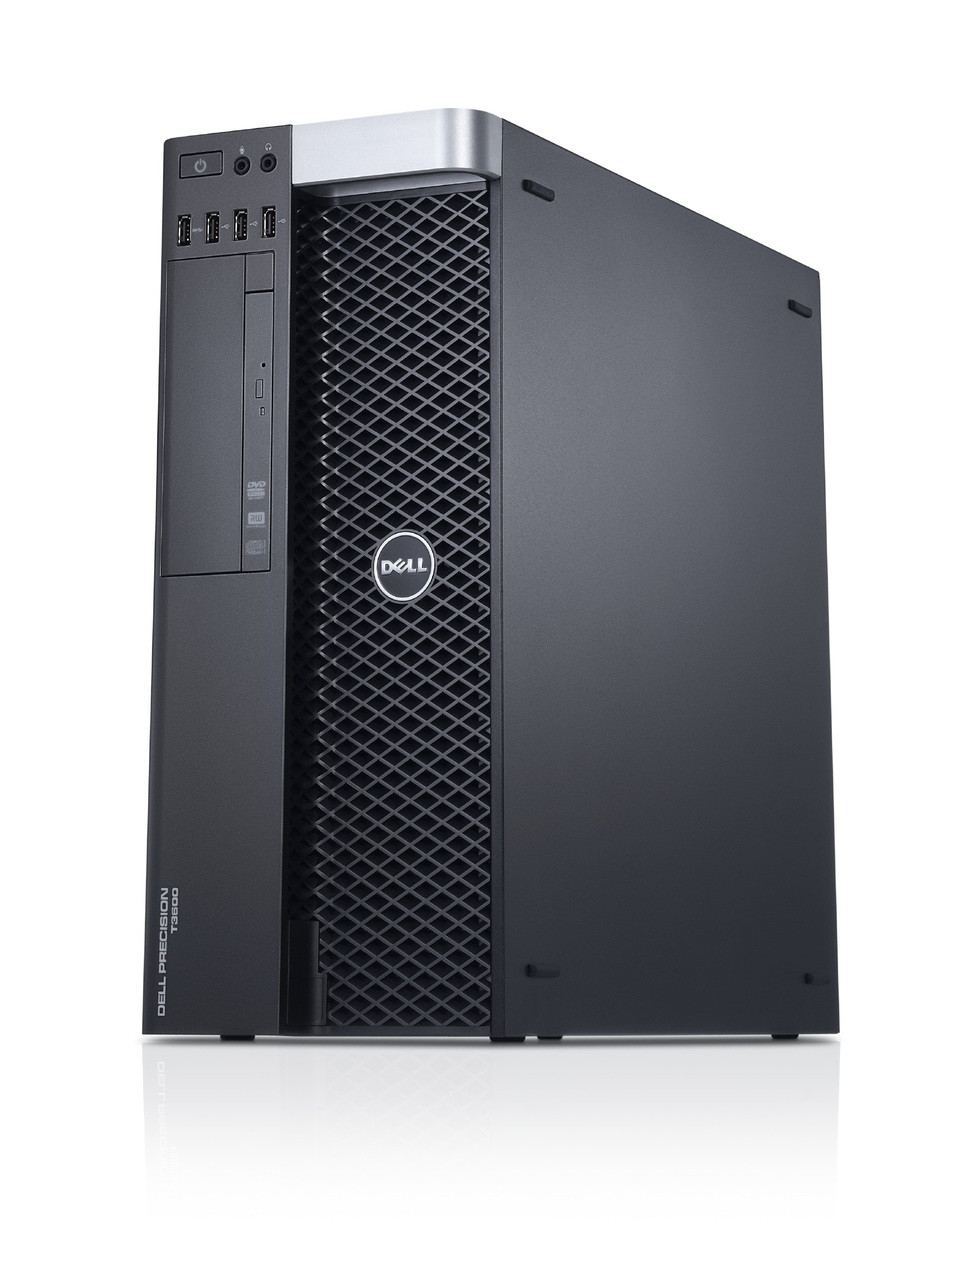 Dell Precision T3600 workstation - Right side view